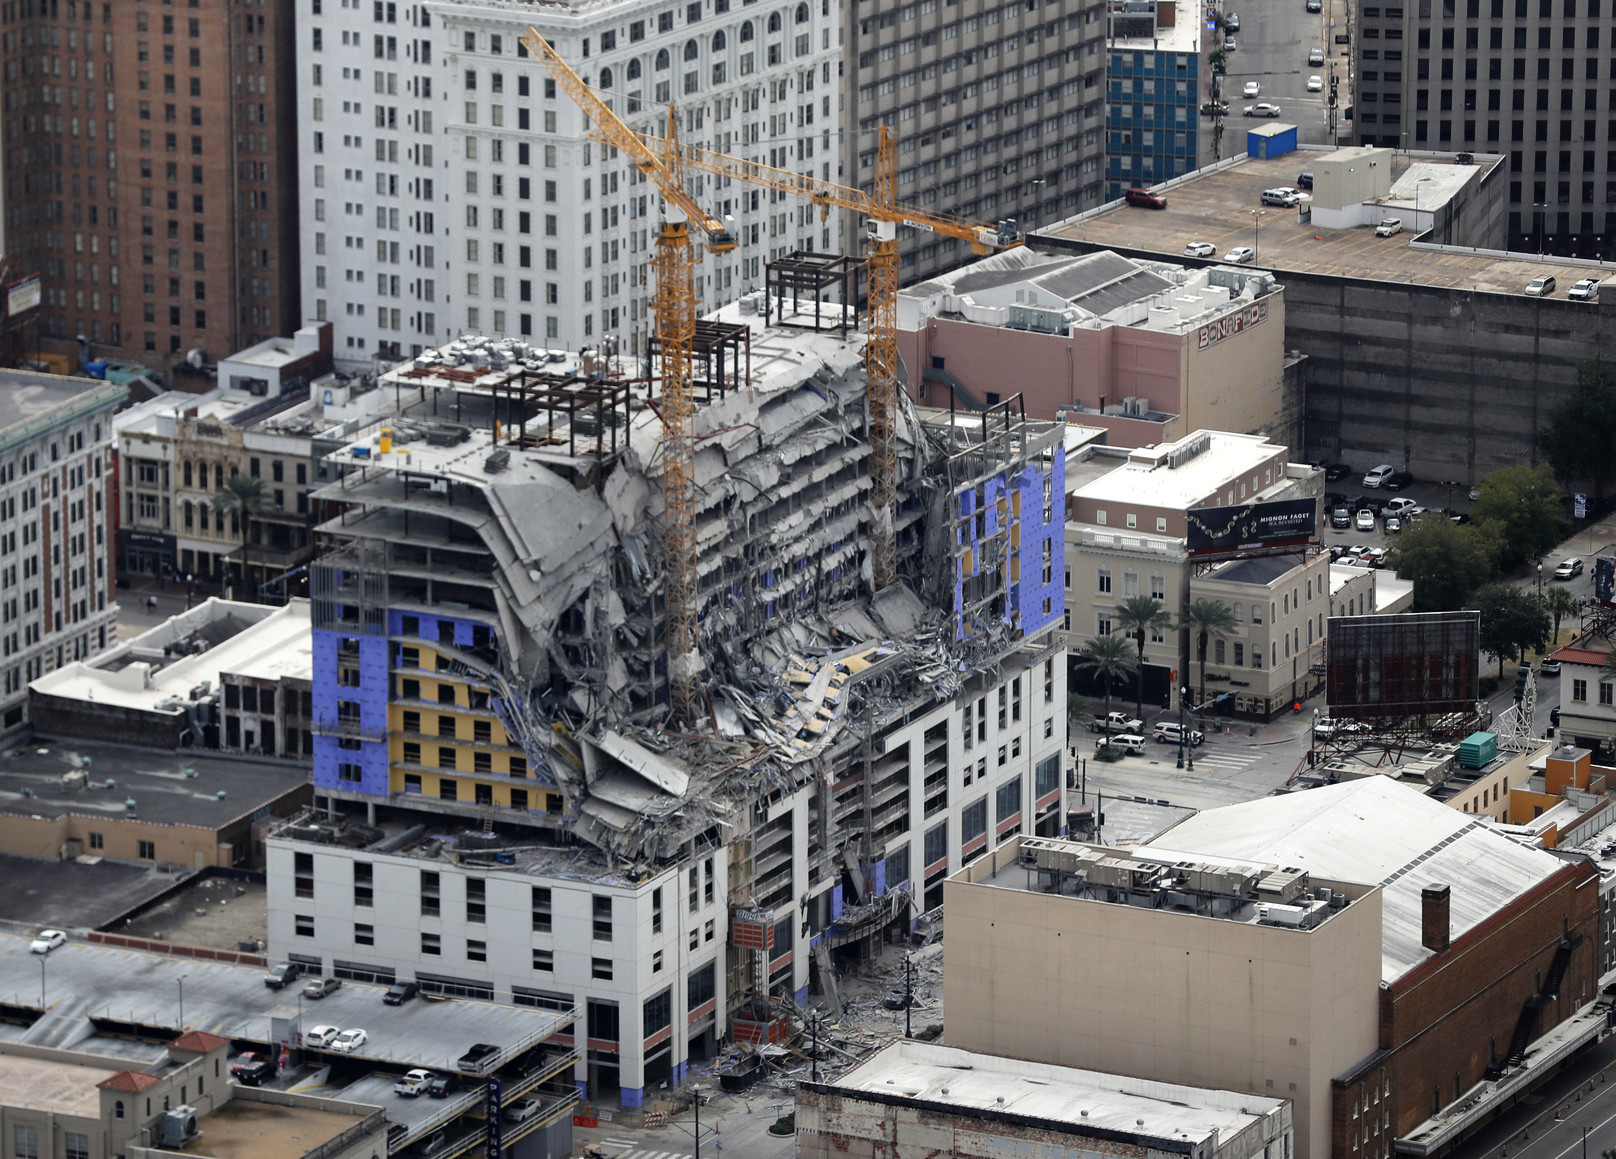 Body of worker who died in New Orleans hotel collapse exposed after tarp blows away